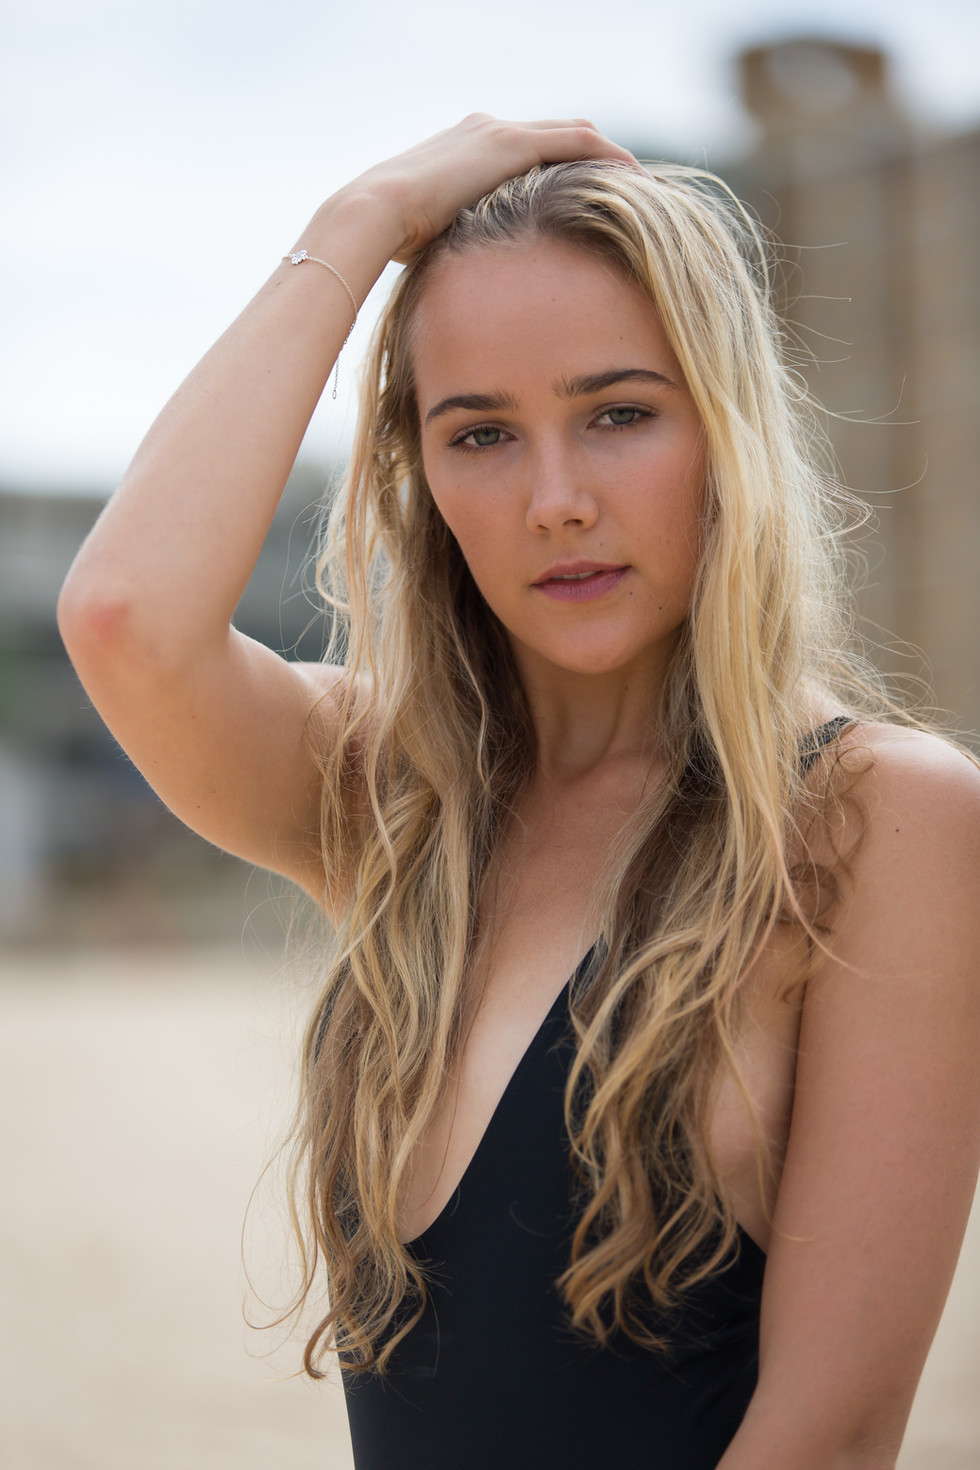 Amy__by_CoogeePhotography-781654.jpg